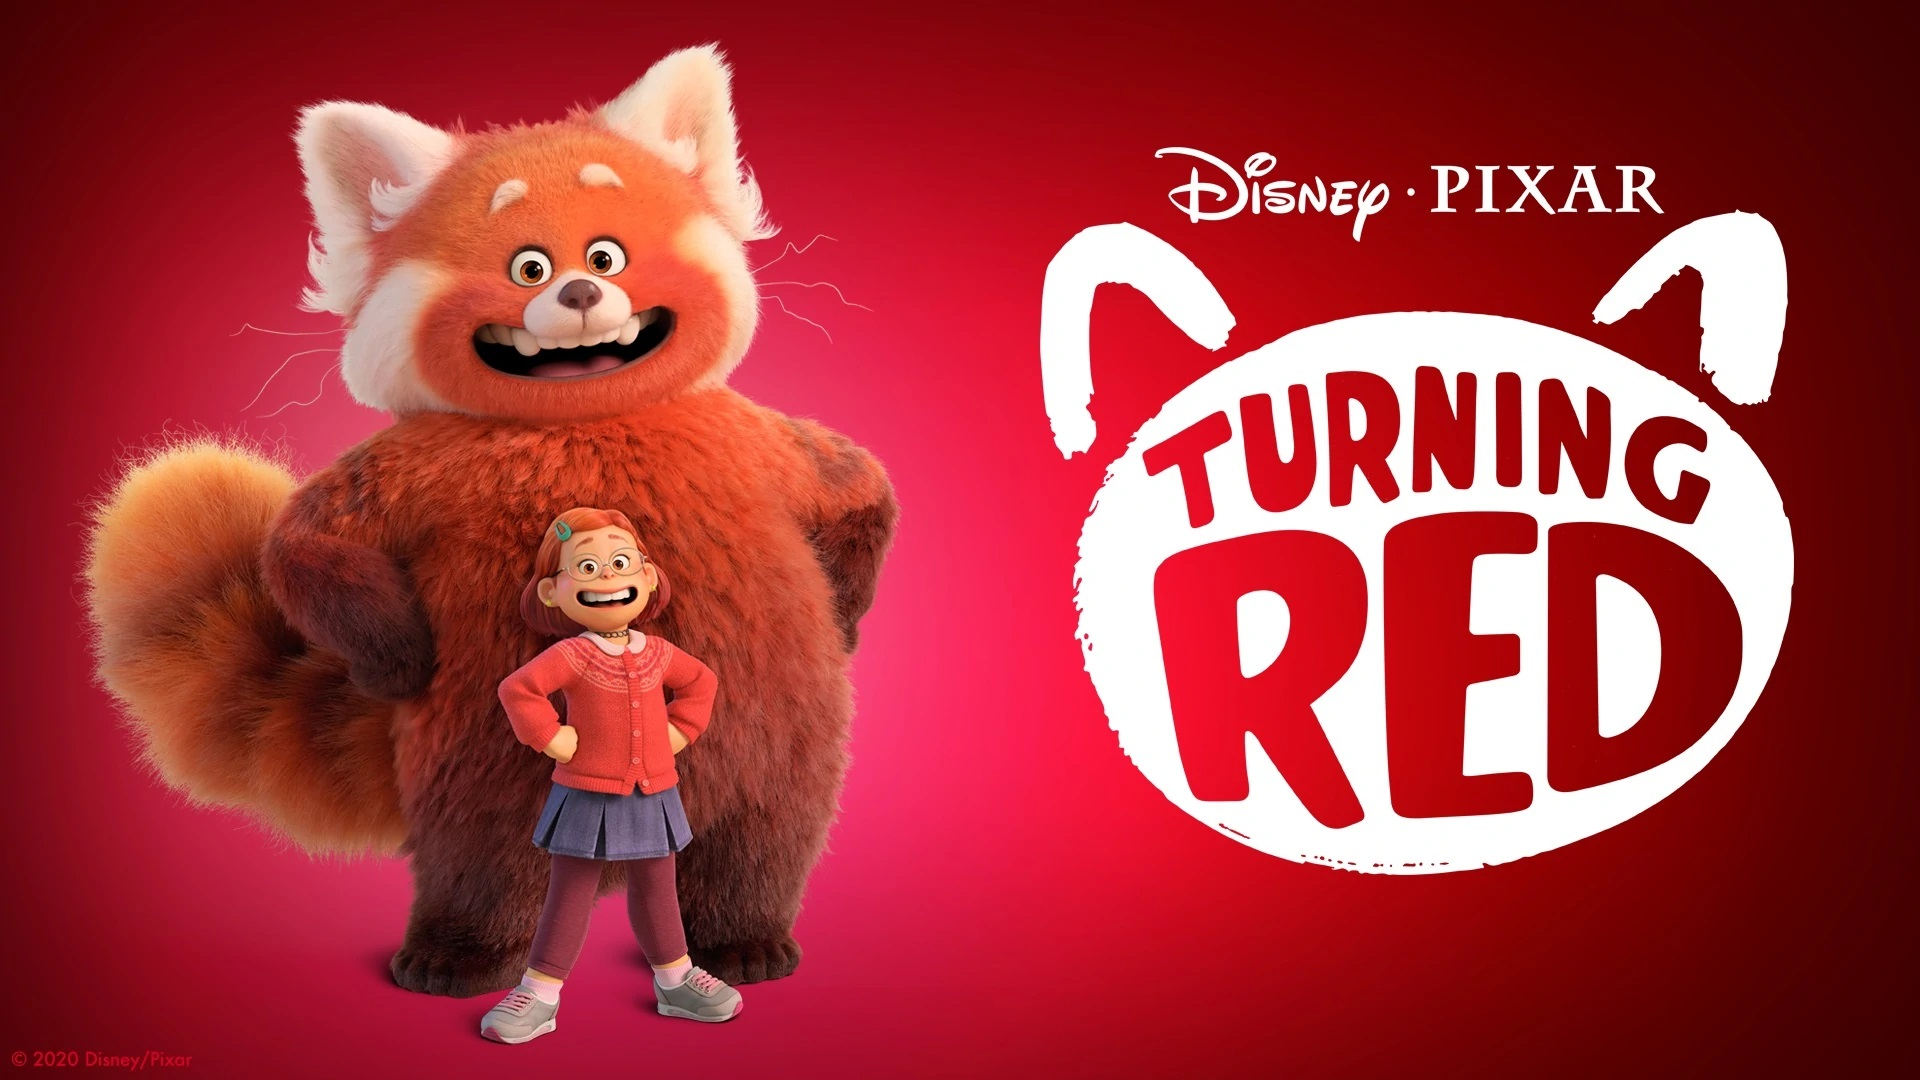 Turning Red 2022 - Bets Animated Movie for Kids in 2022